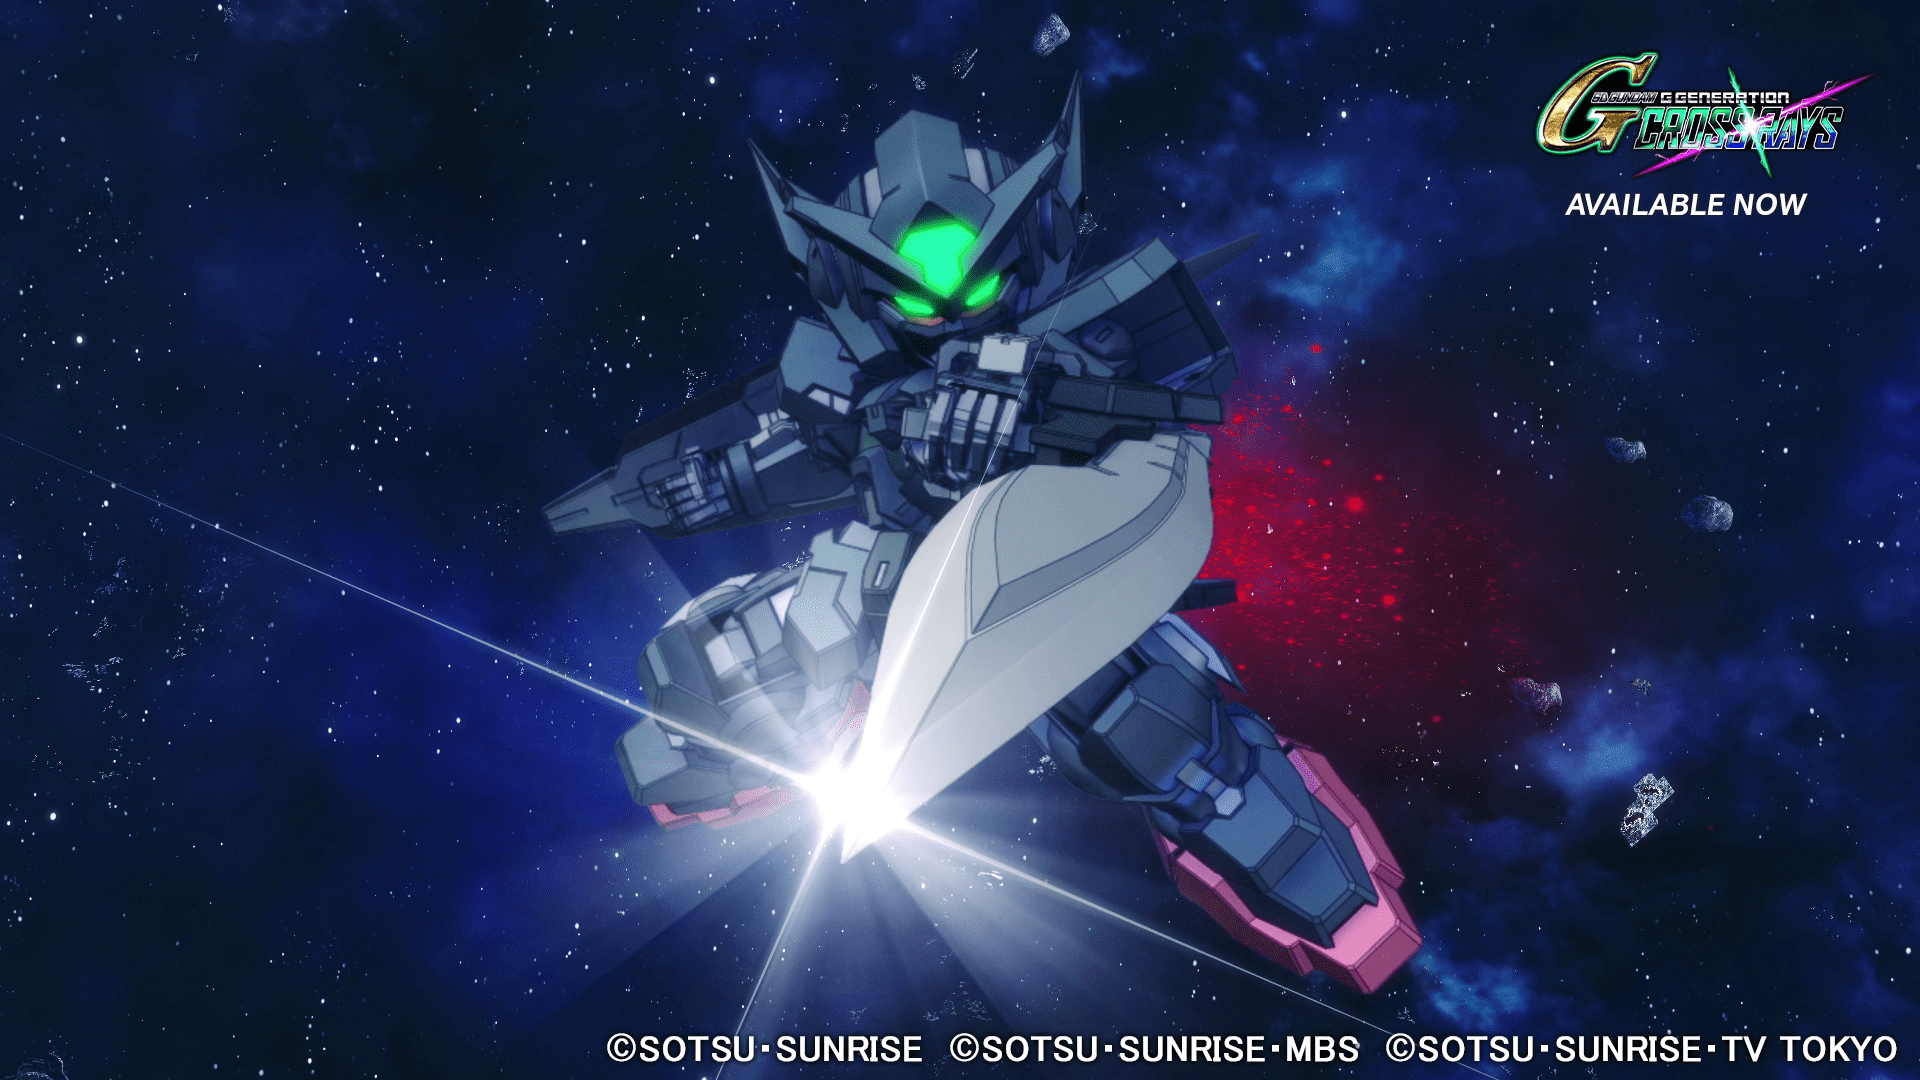 SD Gundam G Generation Cross Ray Update Version 1.2.1